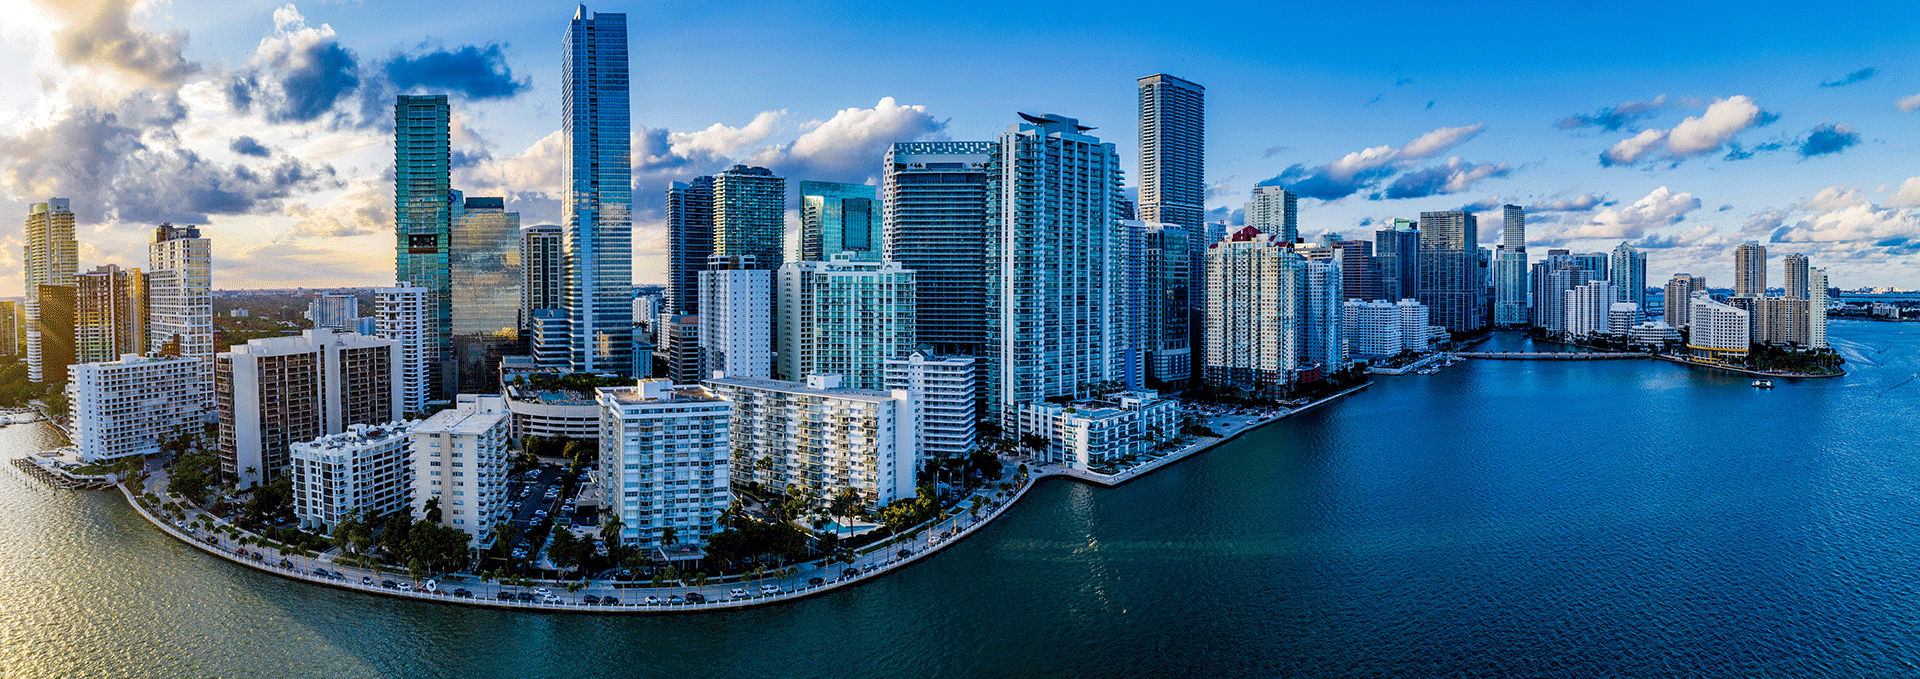 Miami, sea level rise, urban water challenge